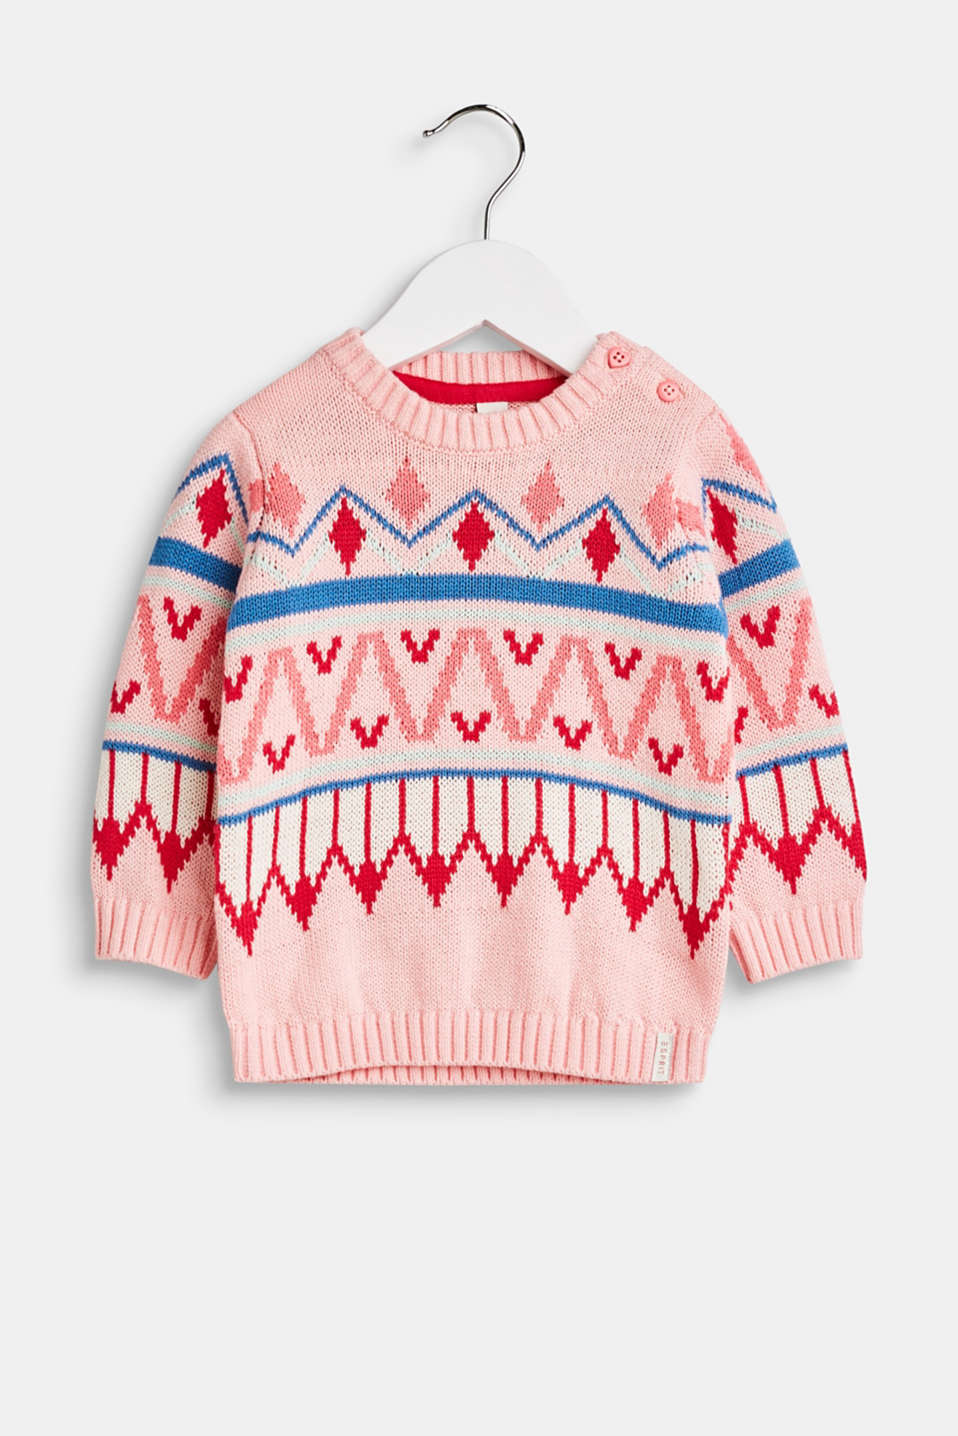 Esprit - Norwegian jumper in 100% cotton